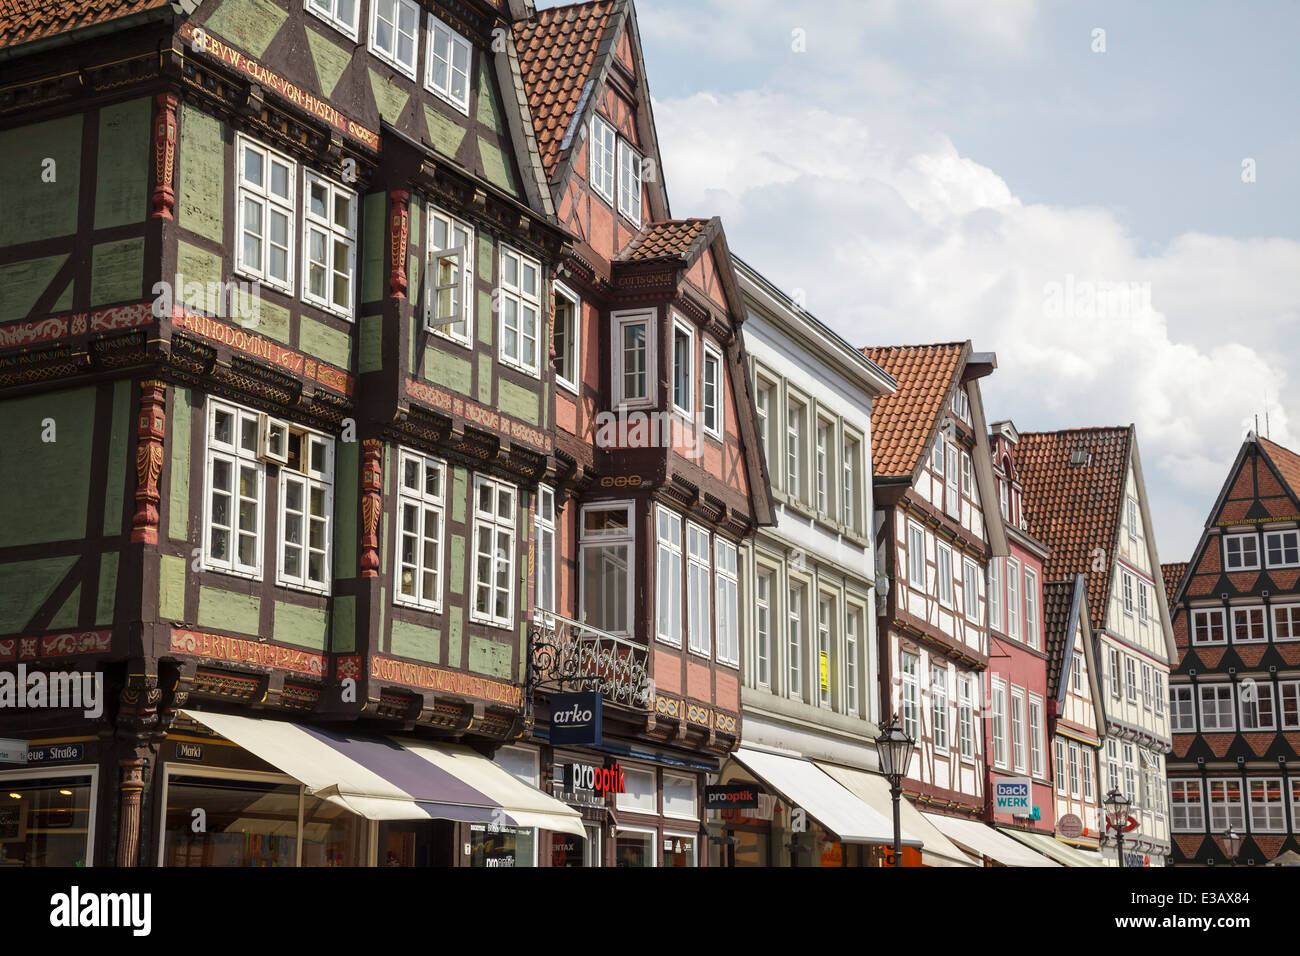 timber frame buildings on the Markt, Celle, Lower Saxony, Germany - Stock Image